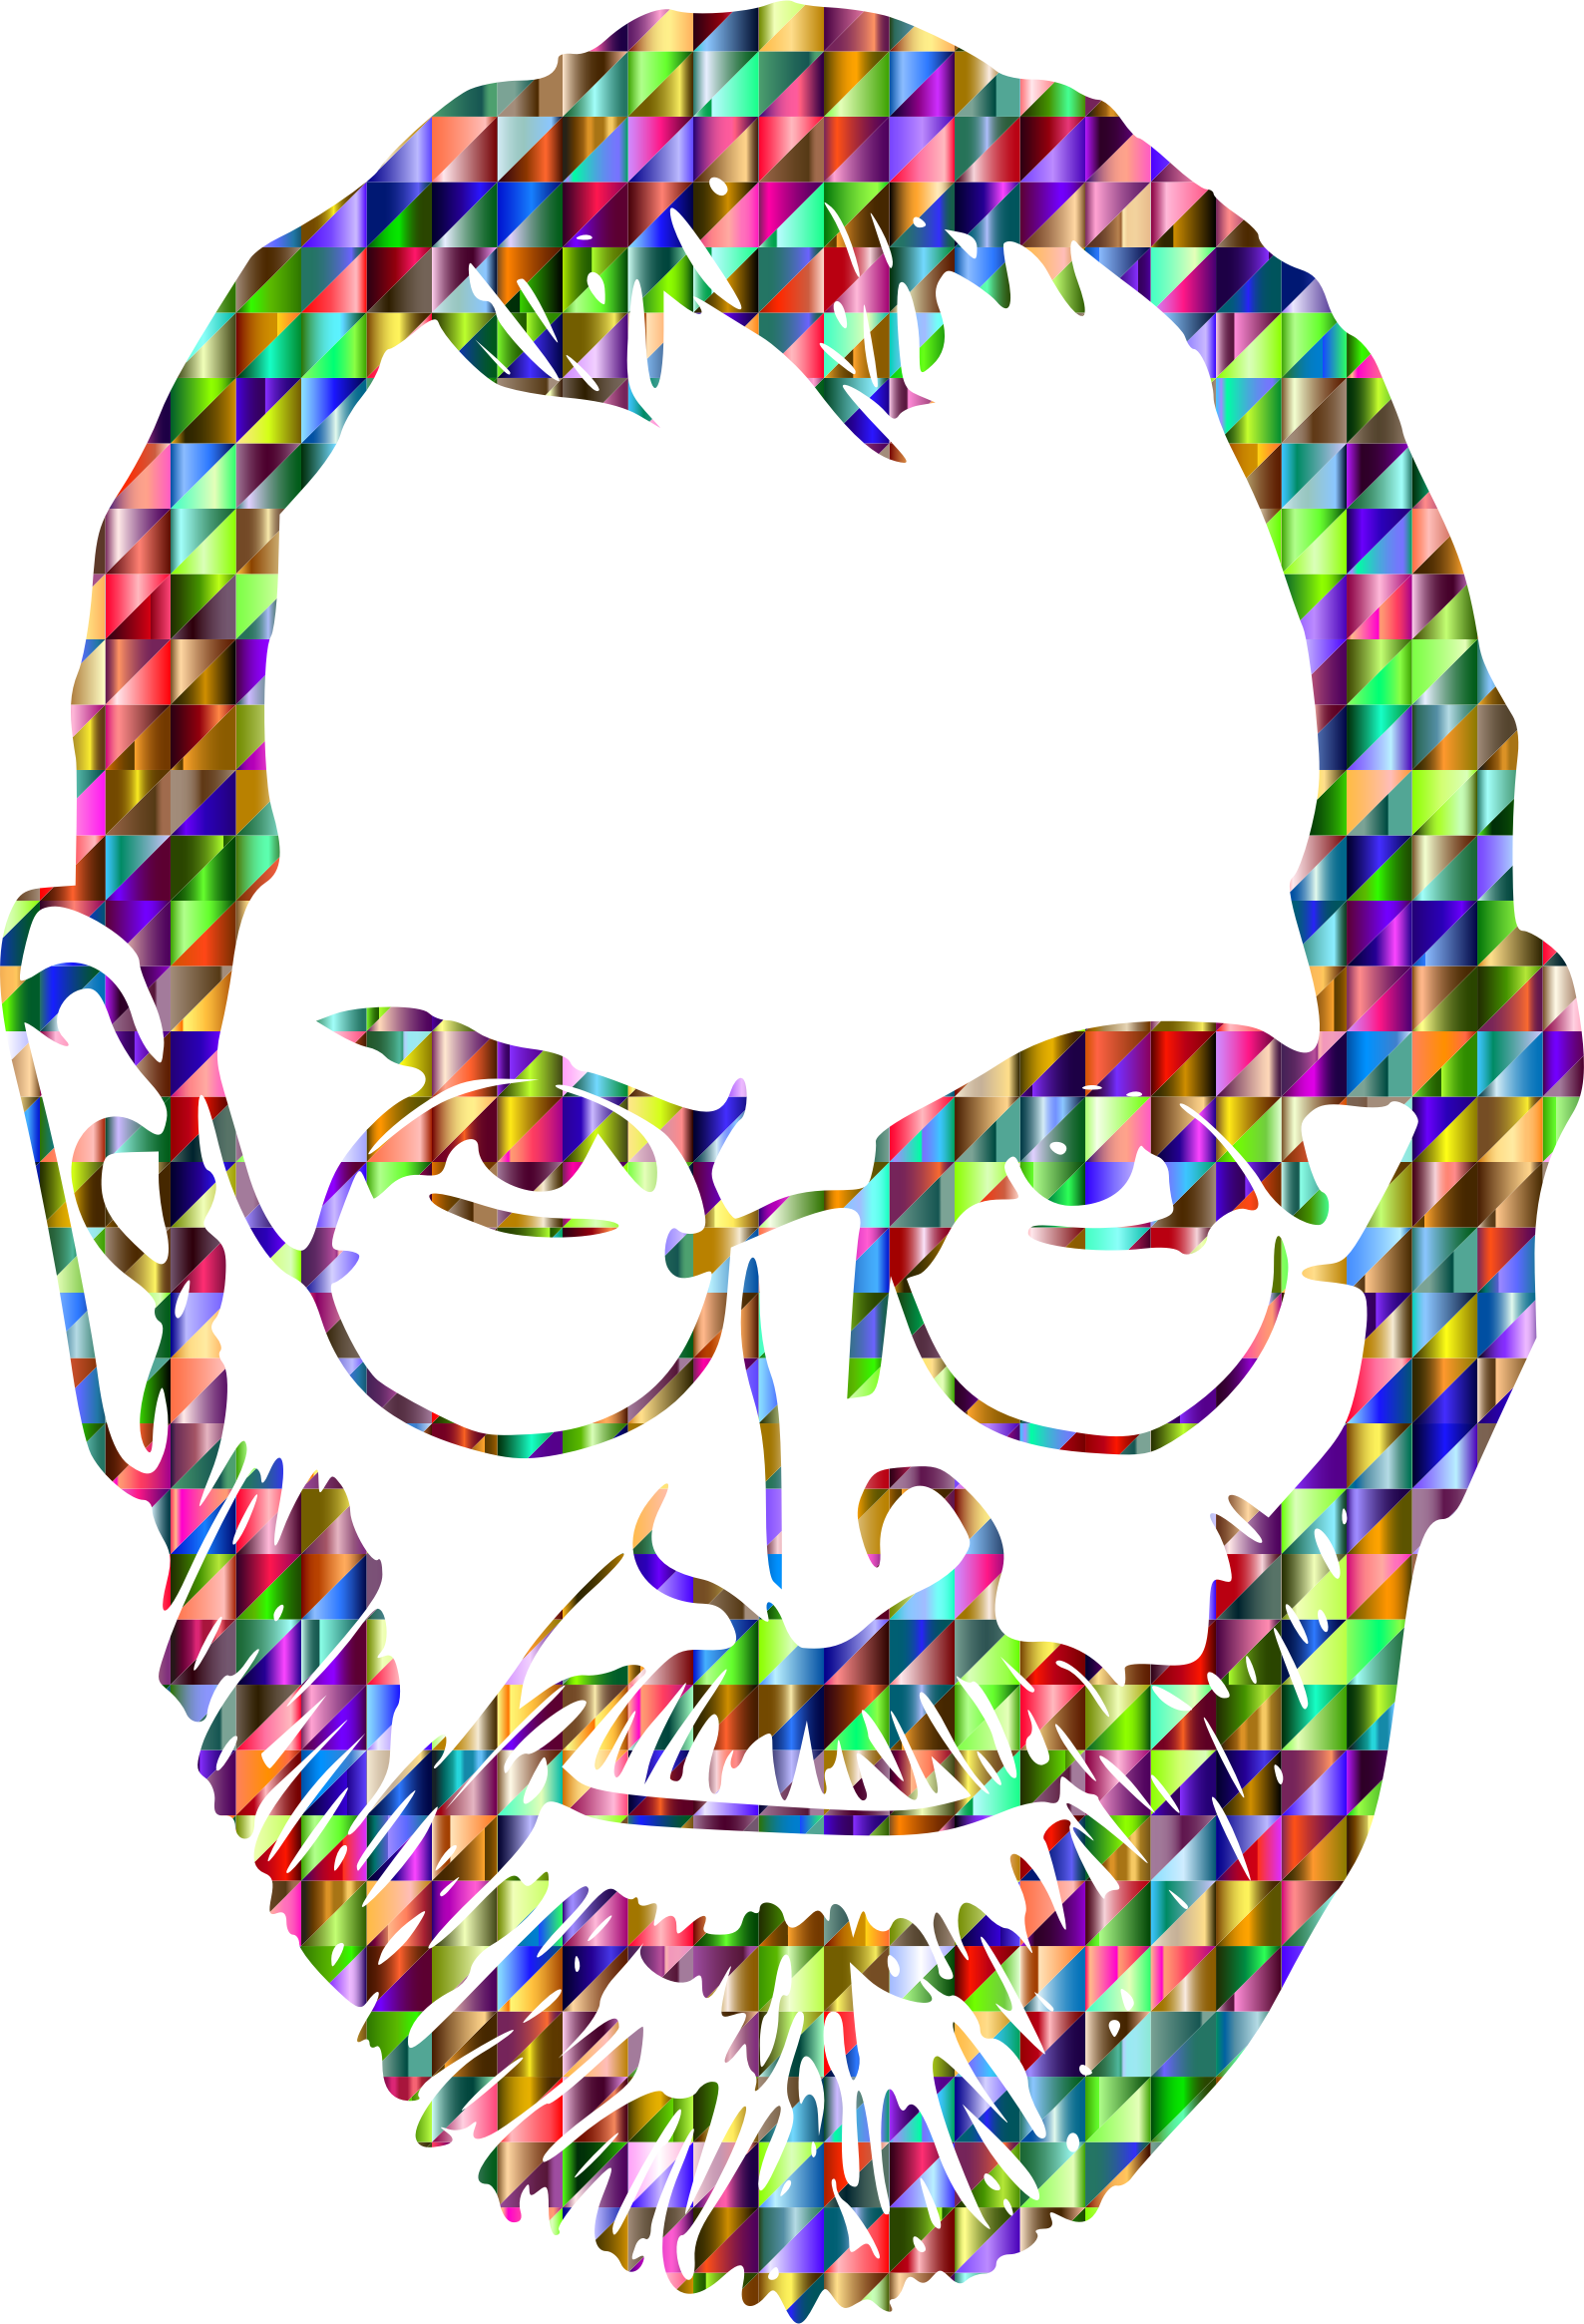 Chromatic Triangular Steve Jobs by GDJ